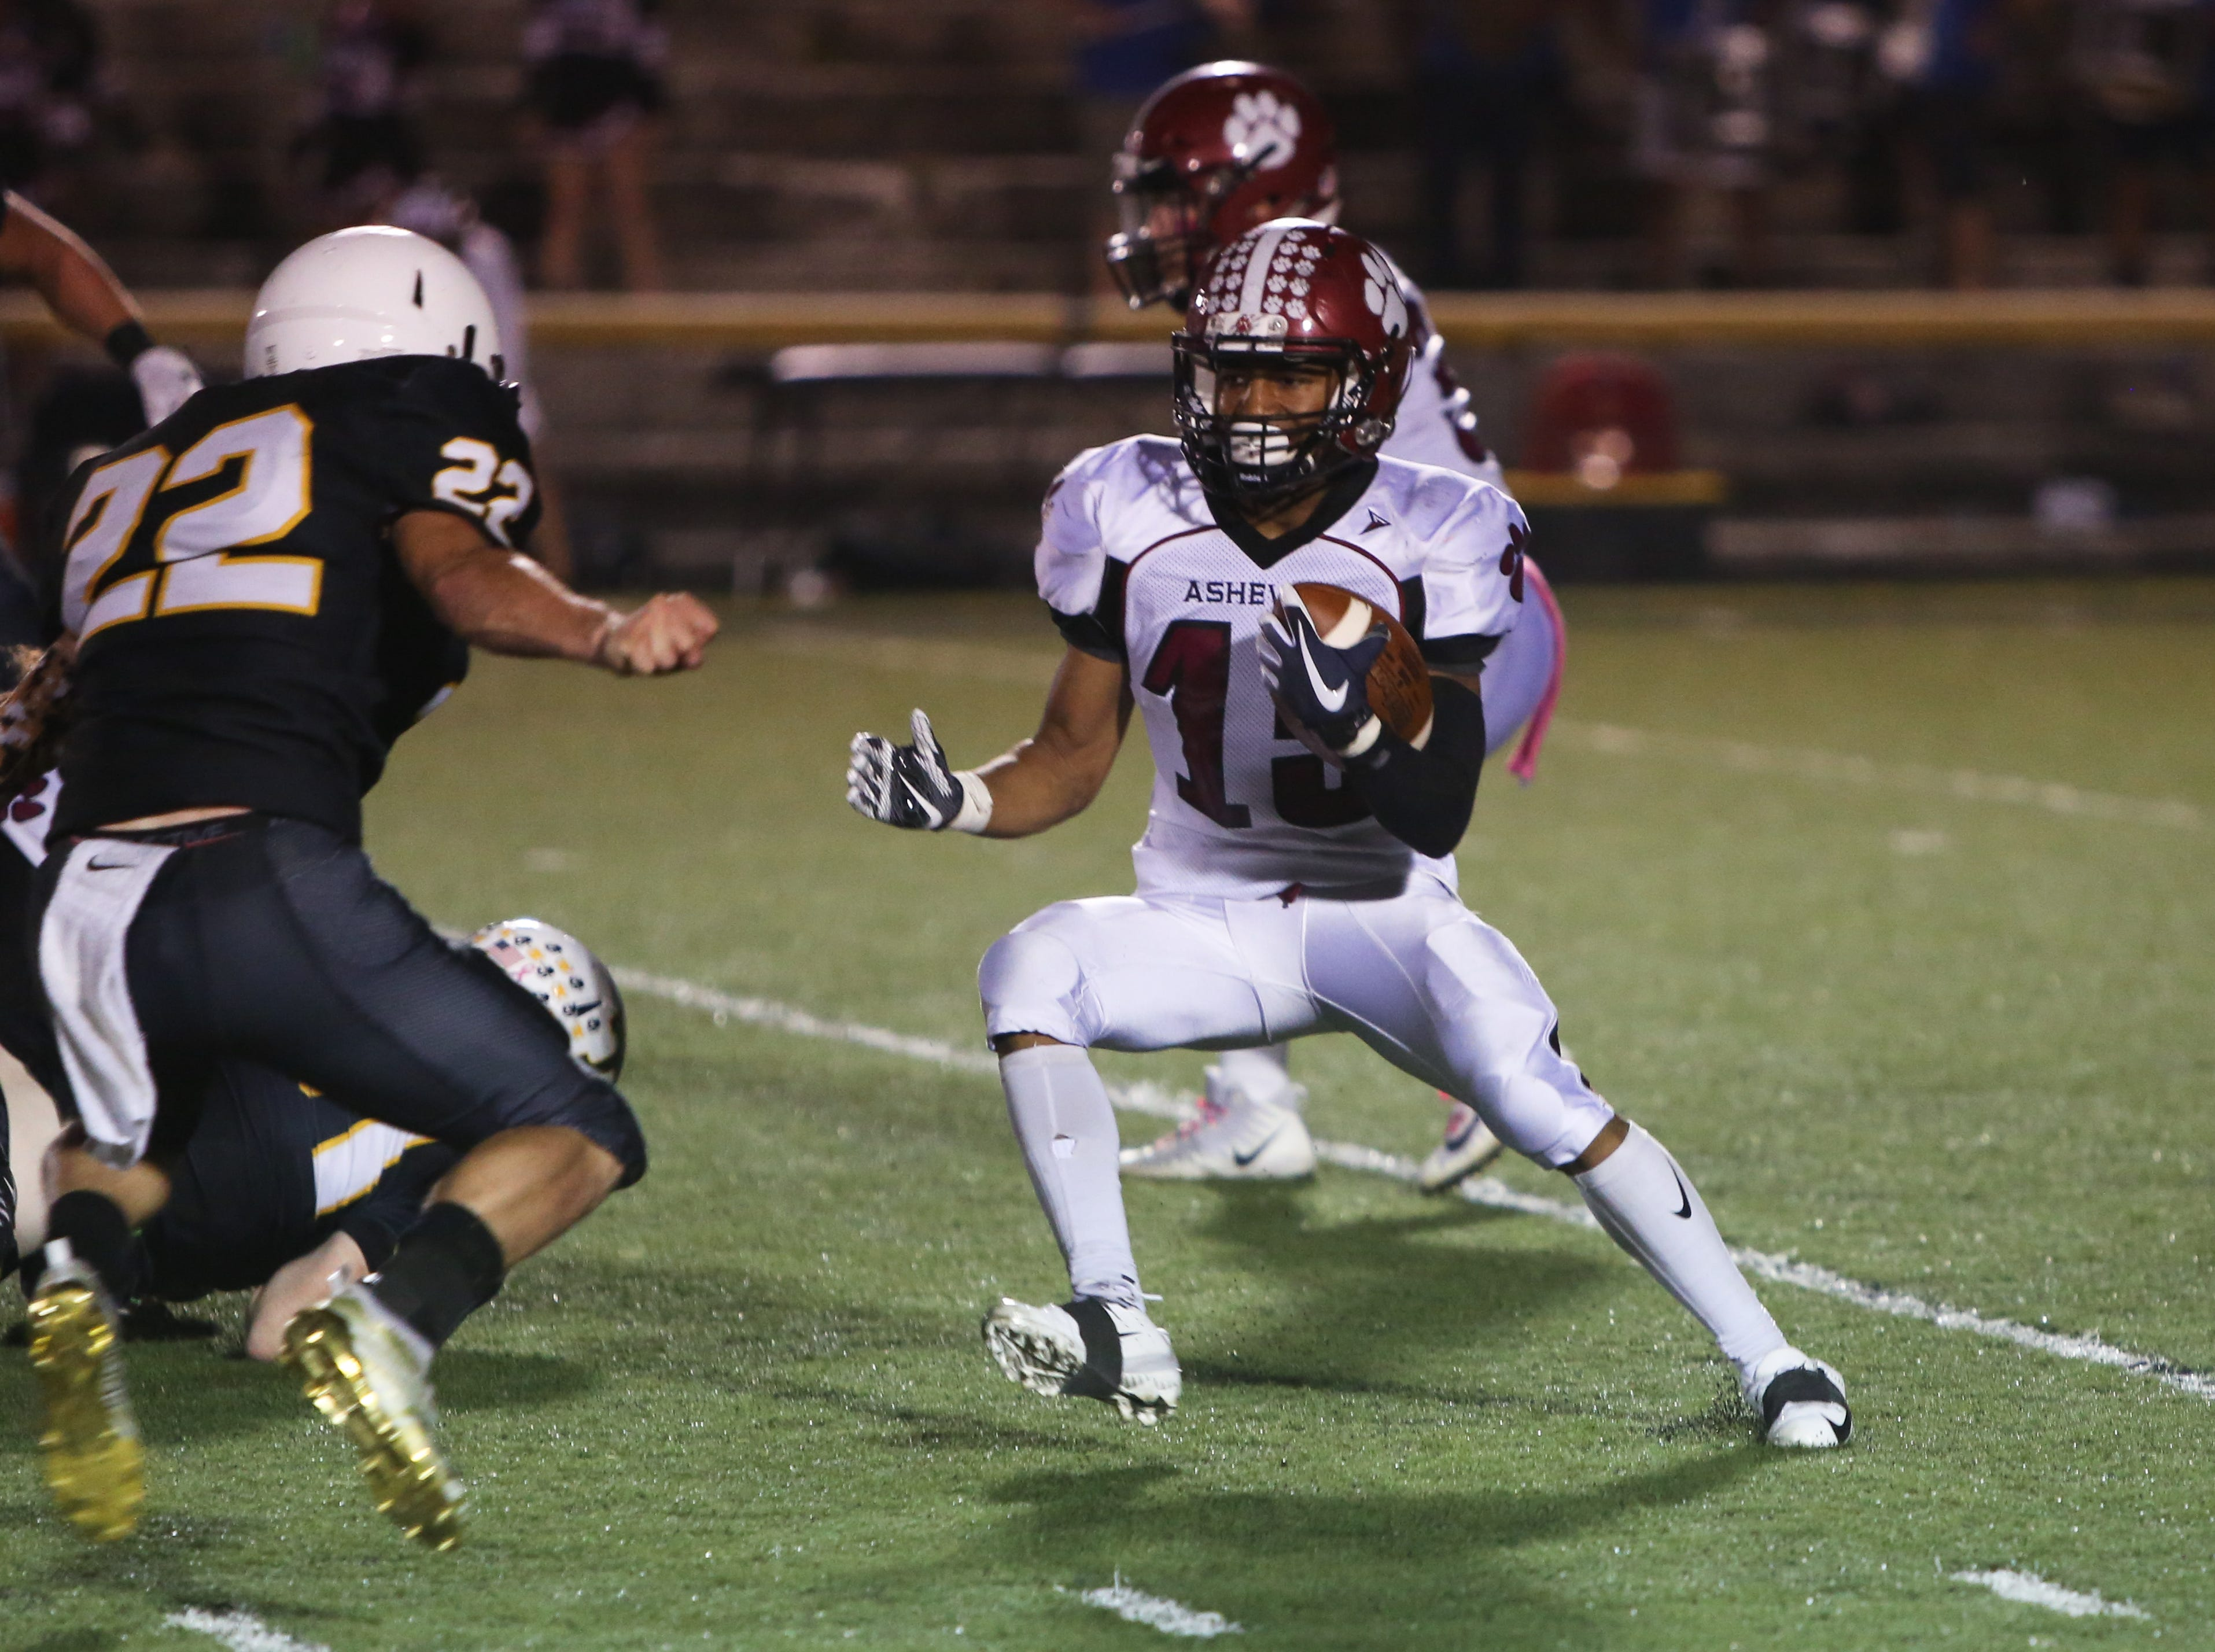 Asheville's Justin Campbell runs the ball on Friday, October 5th, 2018 at Tuscola.  Asheville took the win over Tuscola with a final score of 37-6.